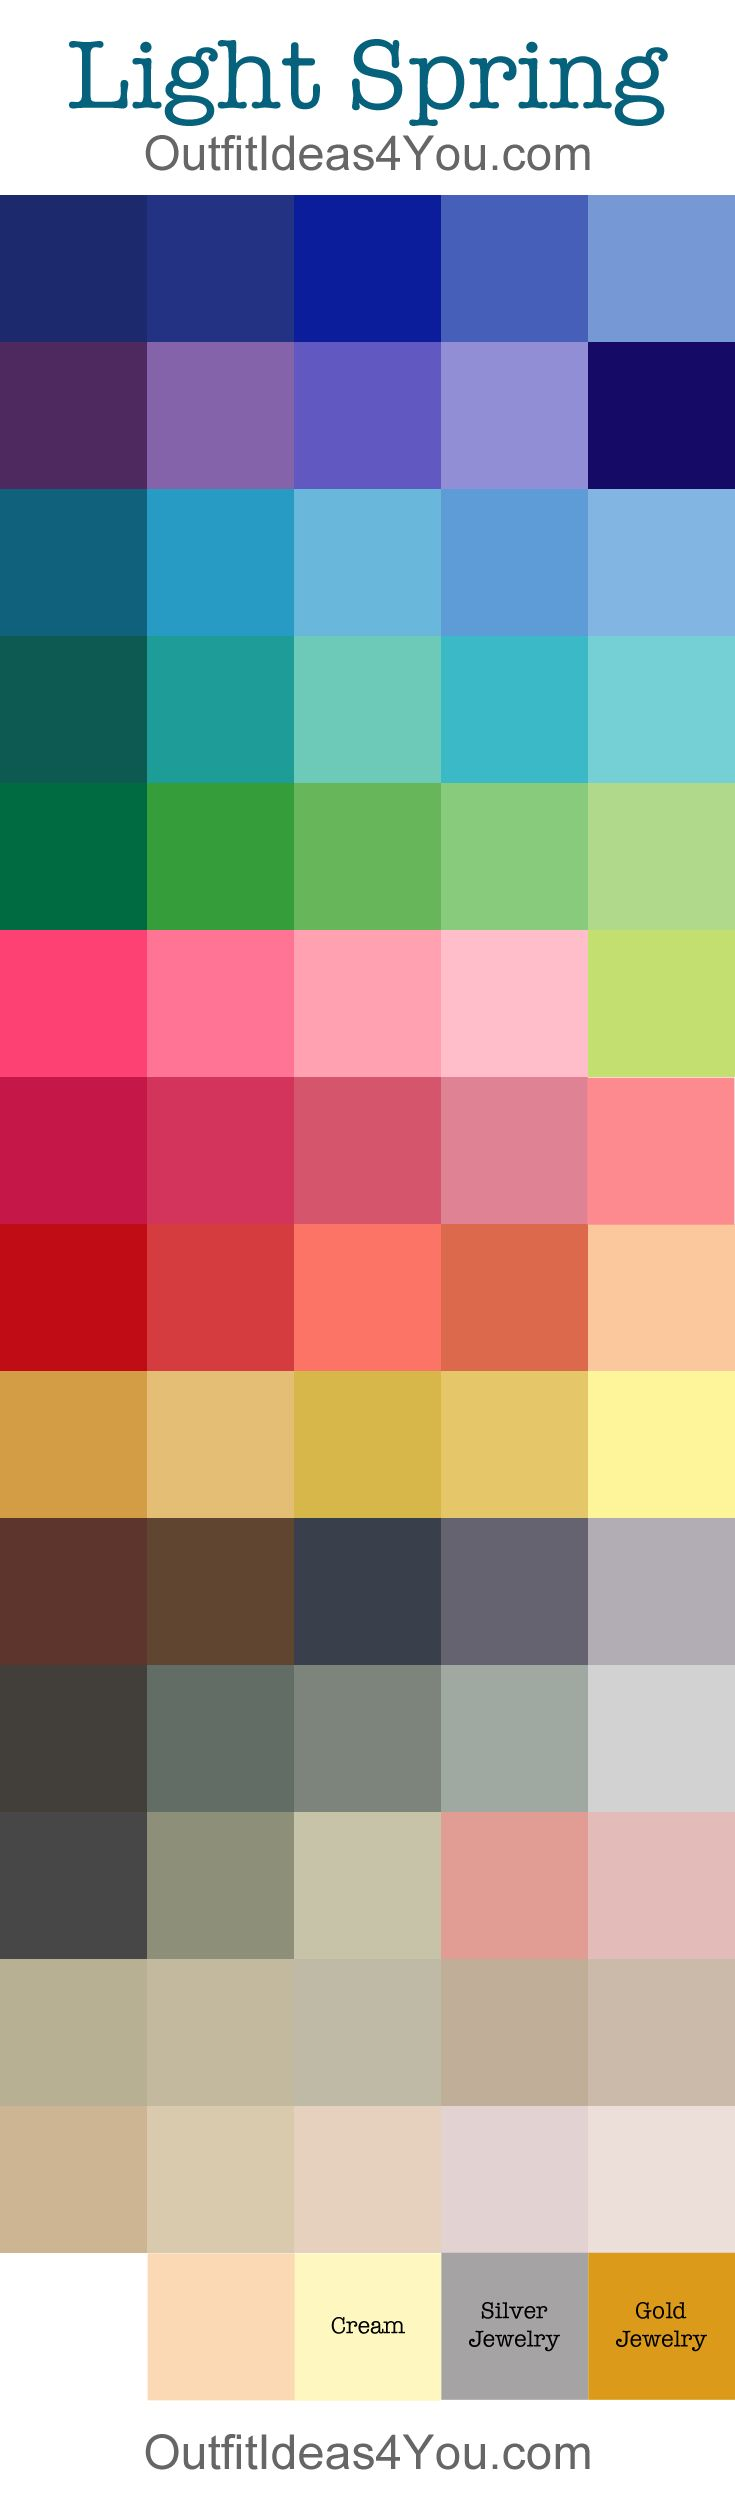 Light Spring Seasonal Color Palette